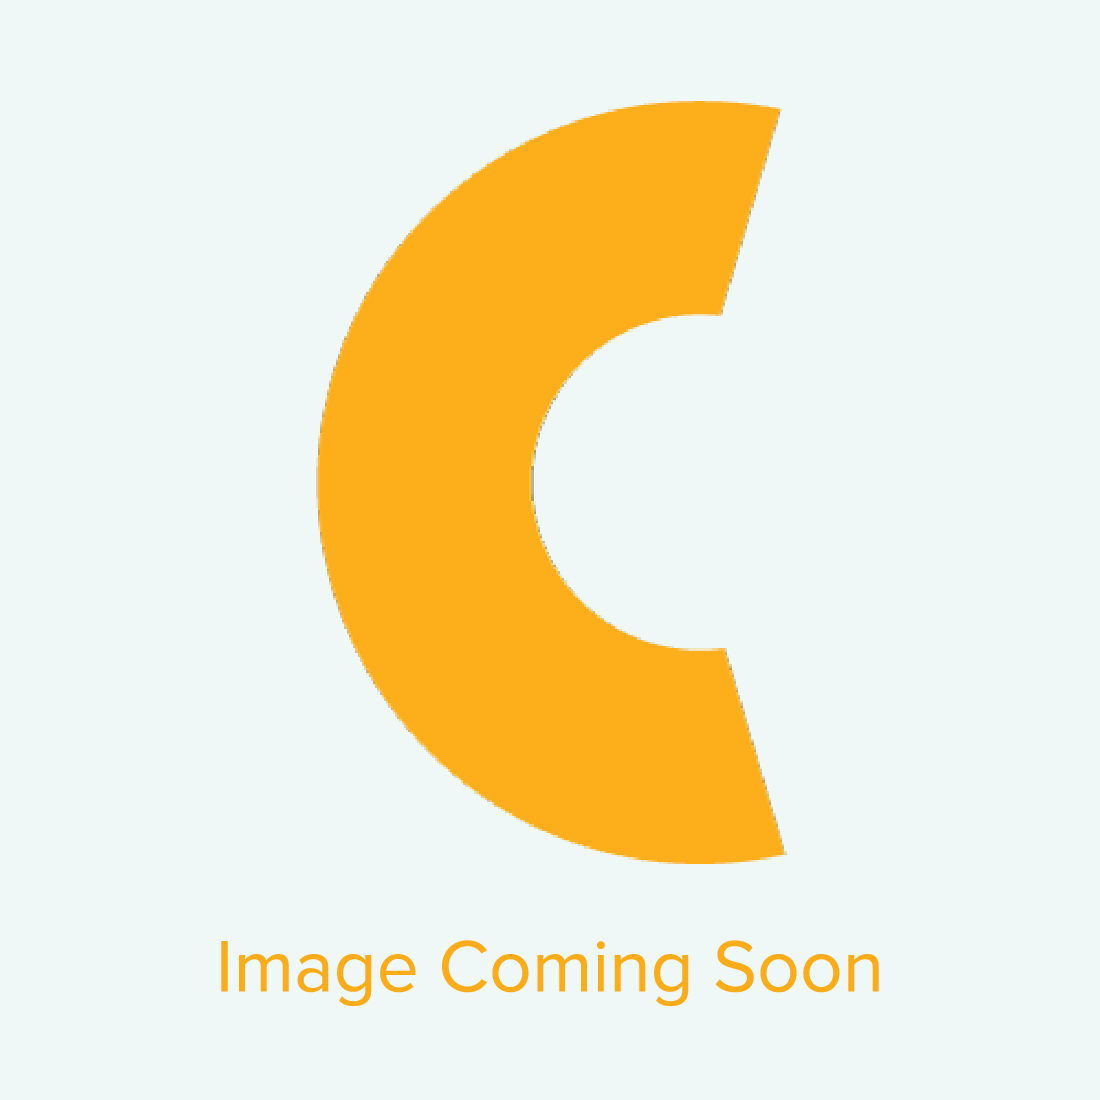 Cork-Back MDF Sublimation Drink Coasters - Hexagon